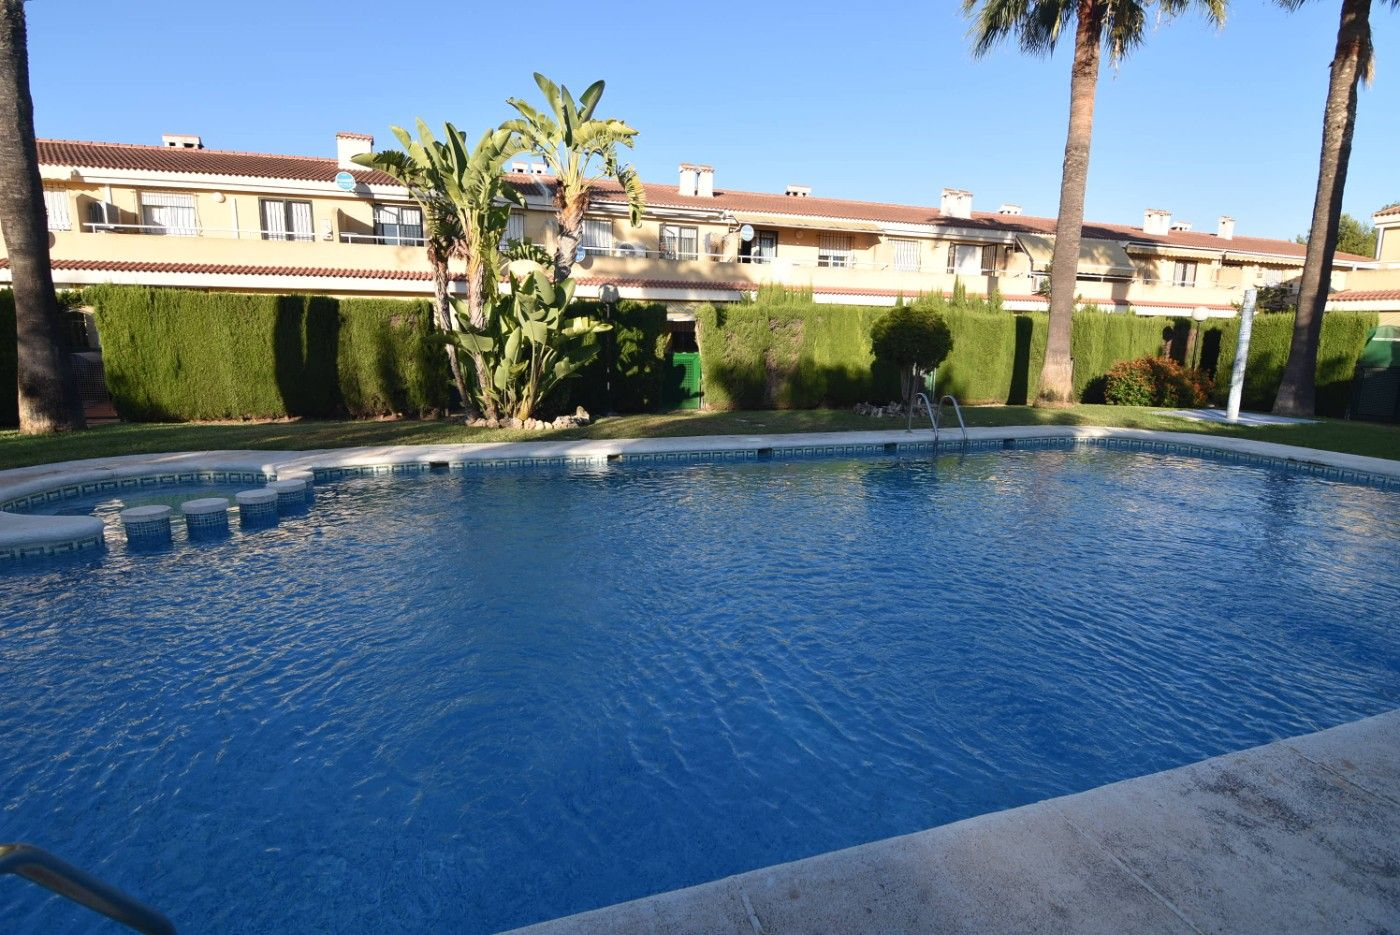 Semi detached house in Calle fatima, 16. Chalet ados. 4 dorm. + piscina